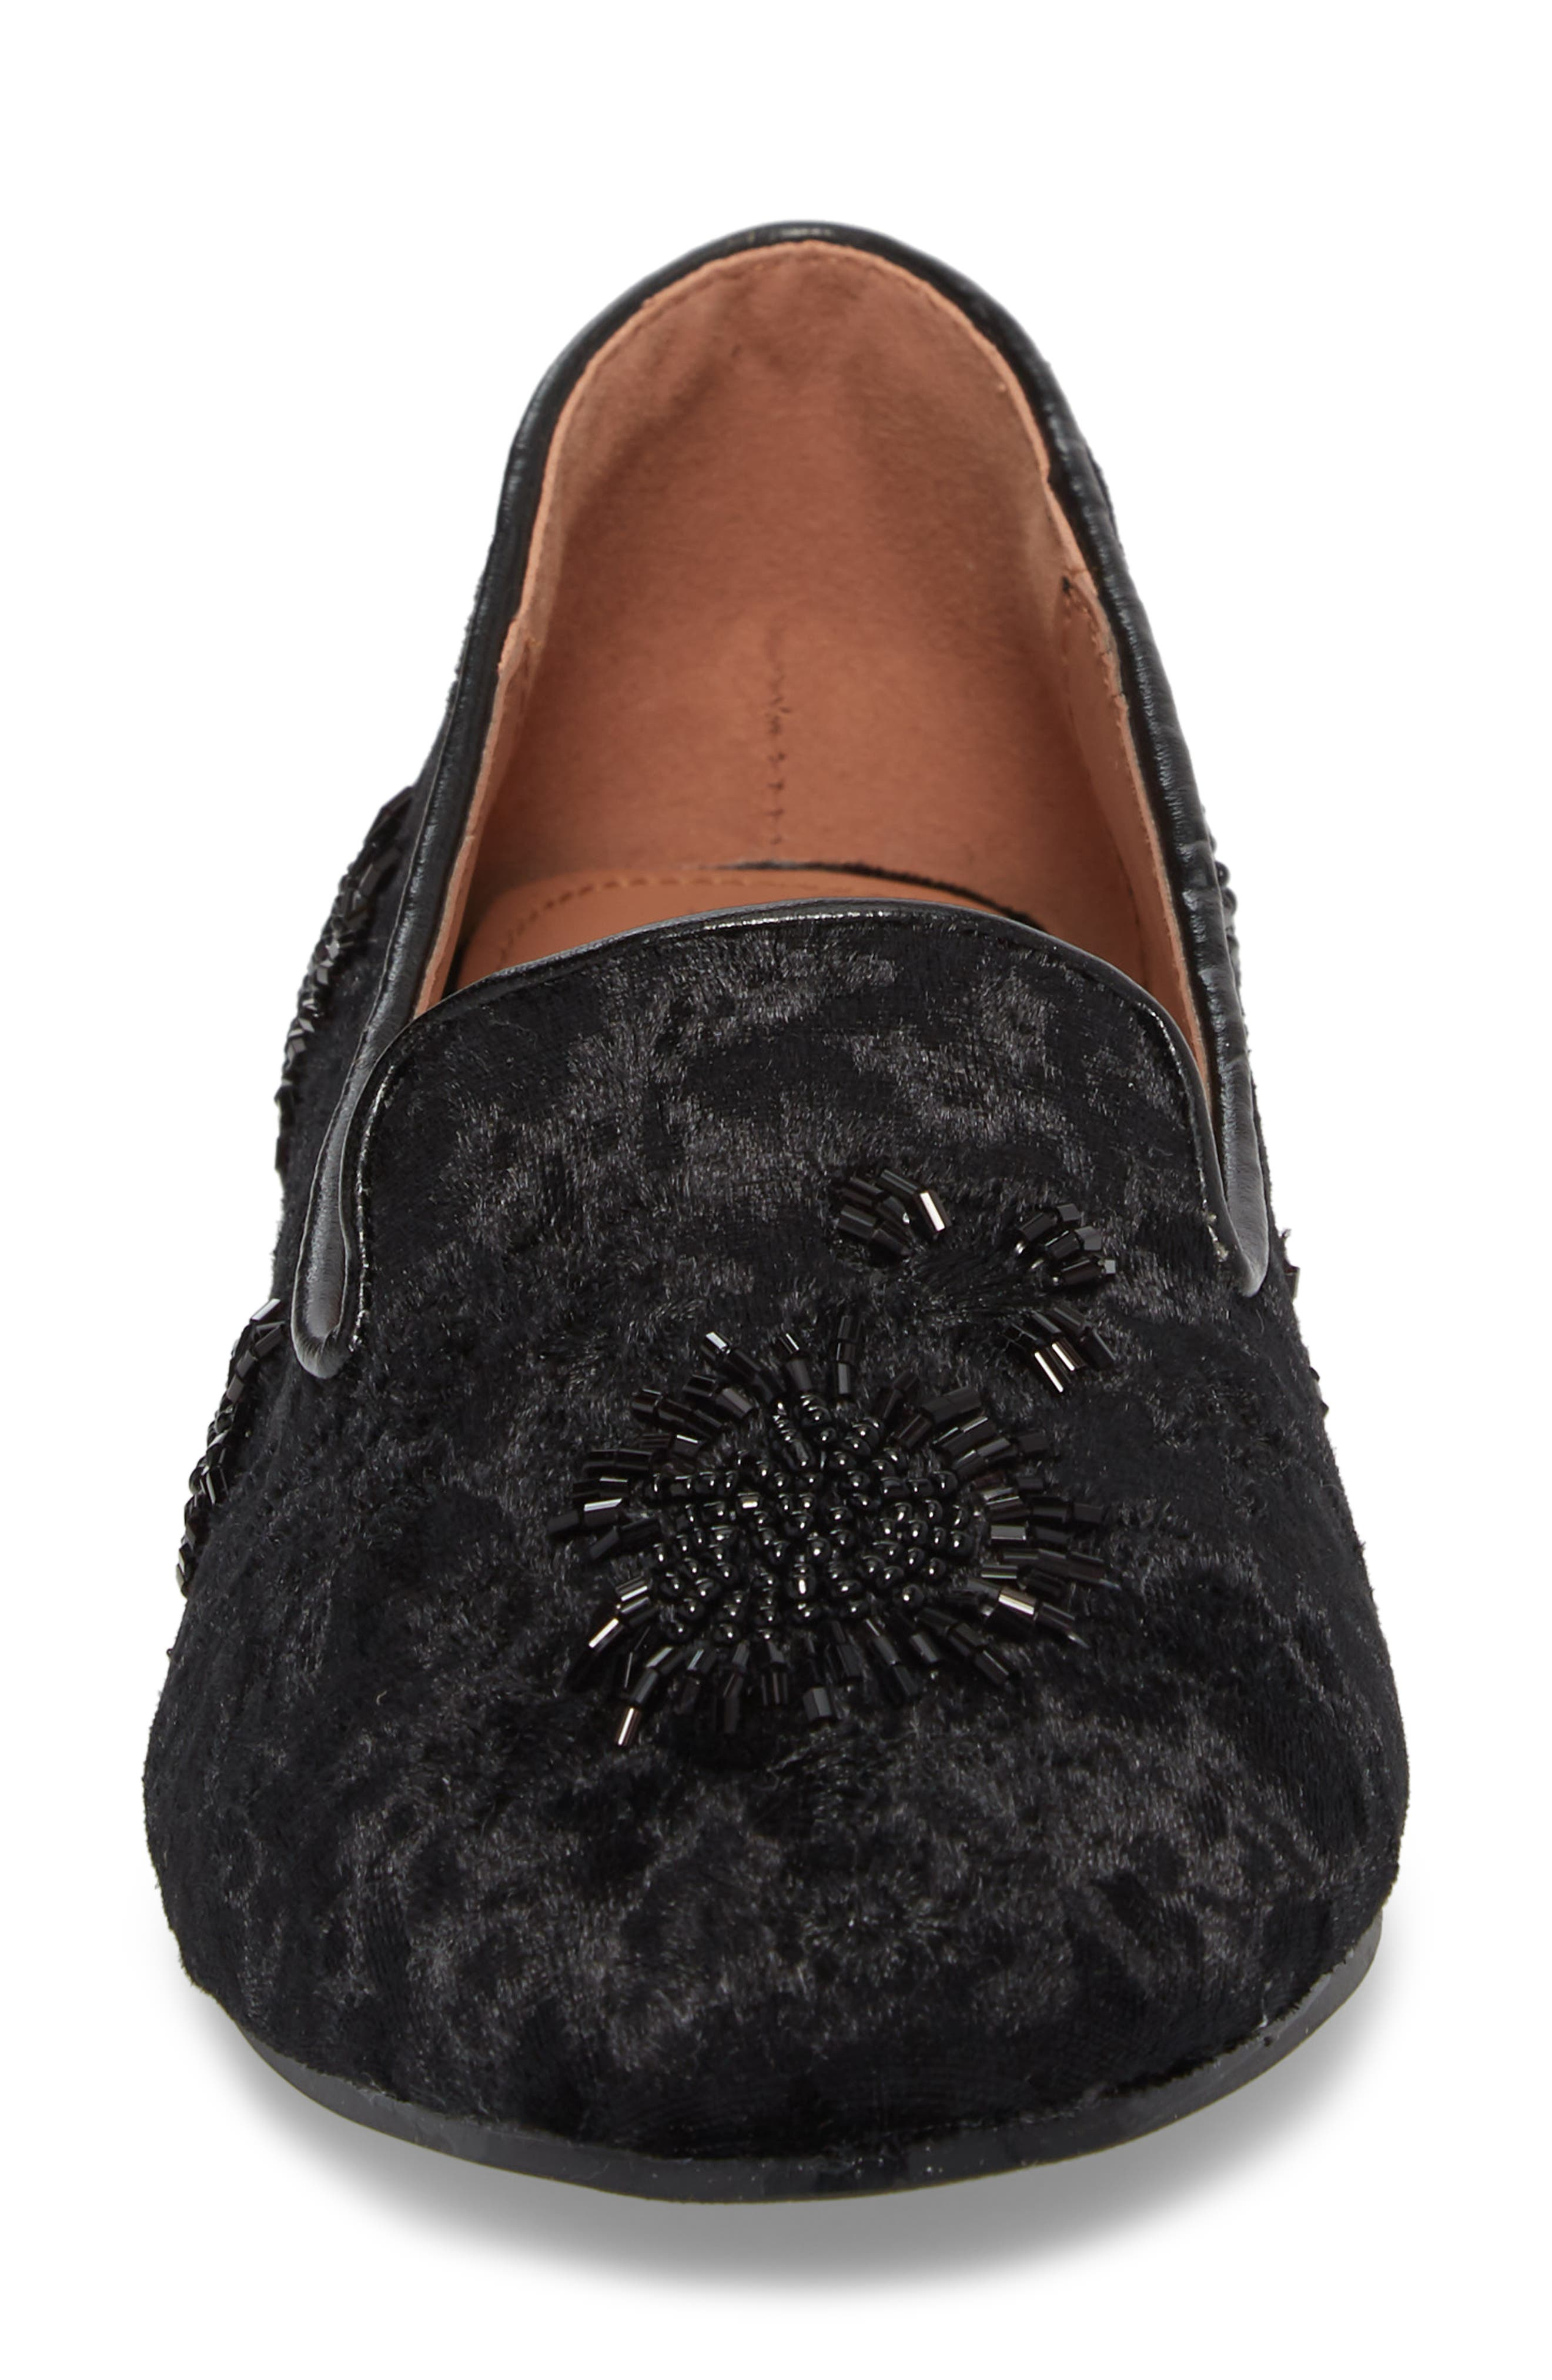 Syrup Embellished Loafer,                             Alternate thumbnail 4, color,                             Black